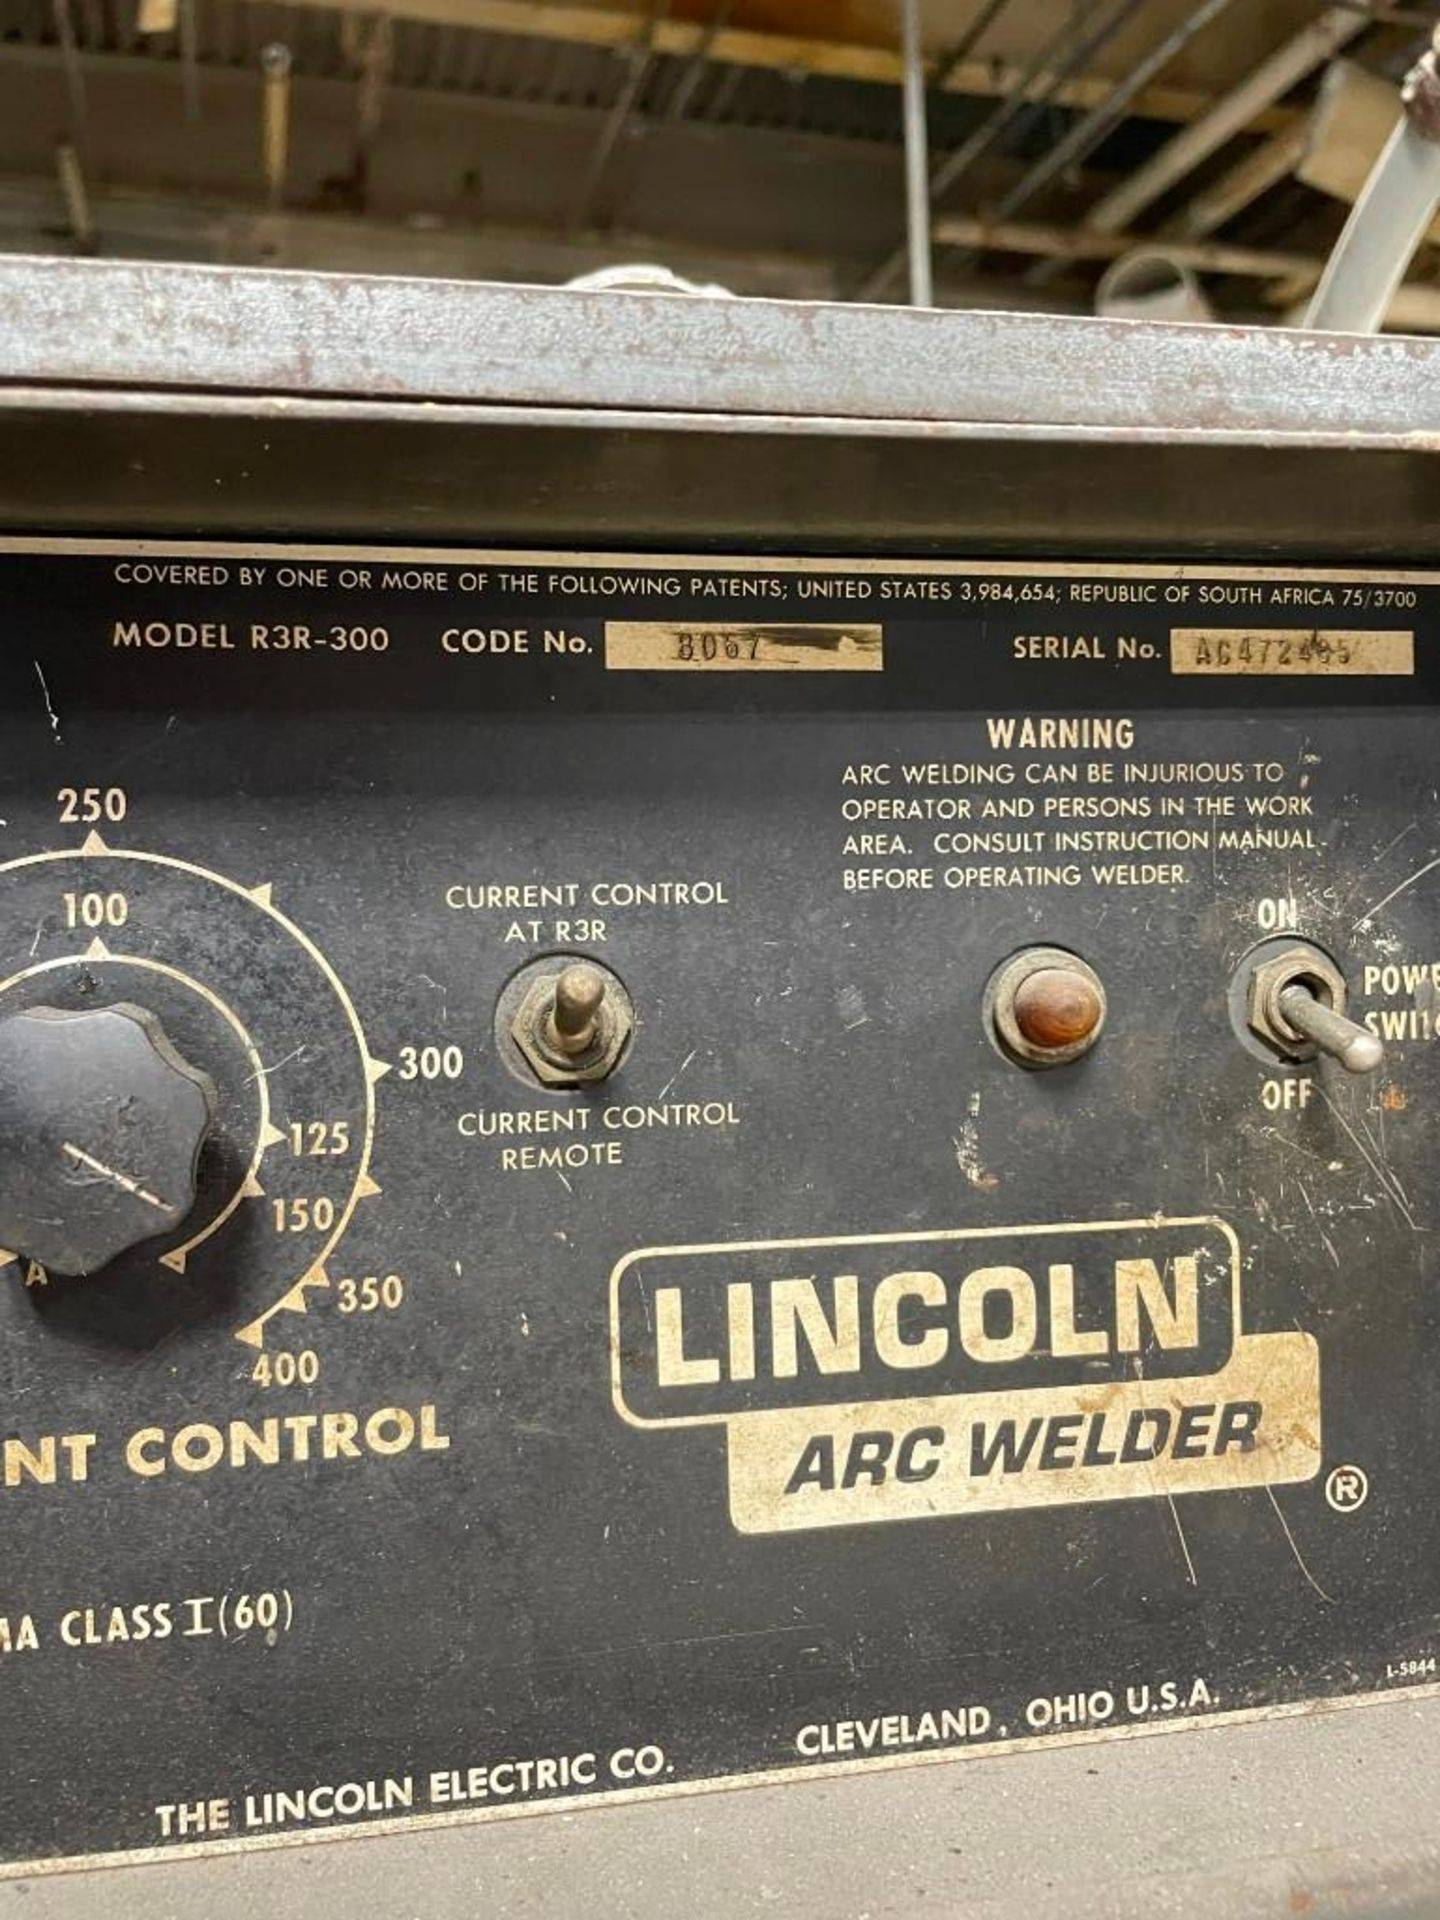 Lincoln Electric Idealarc R3R-300 DC Arc Welder - Image 5 of 5